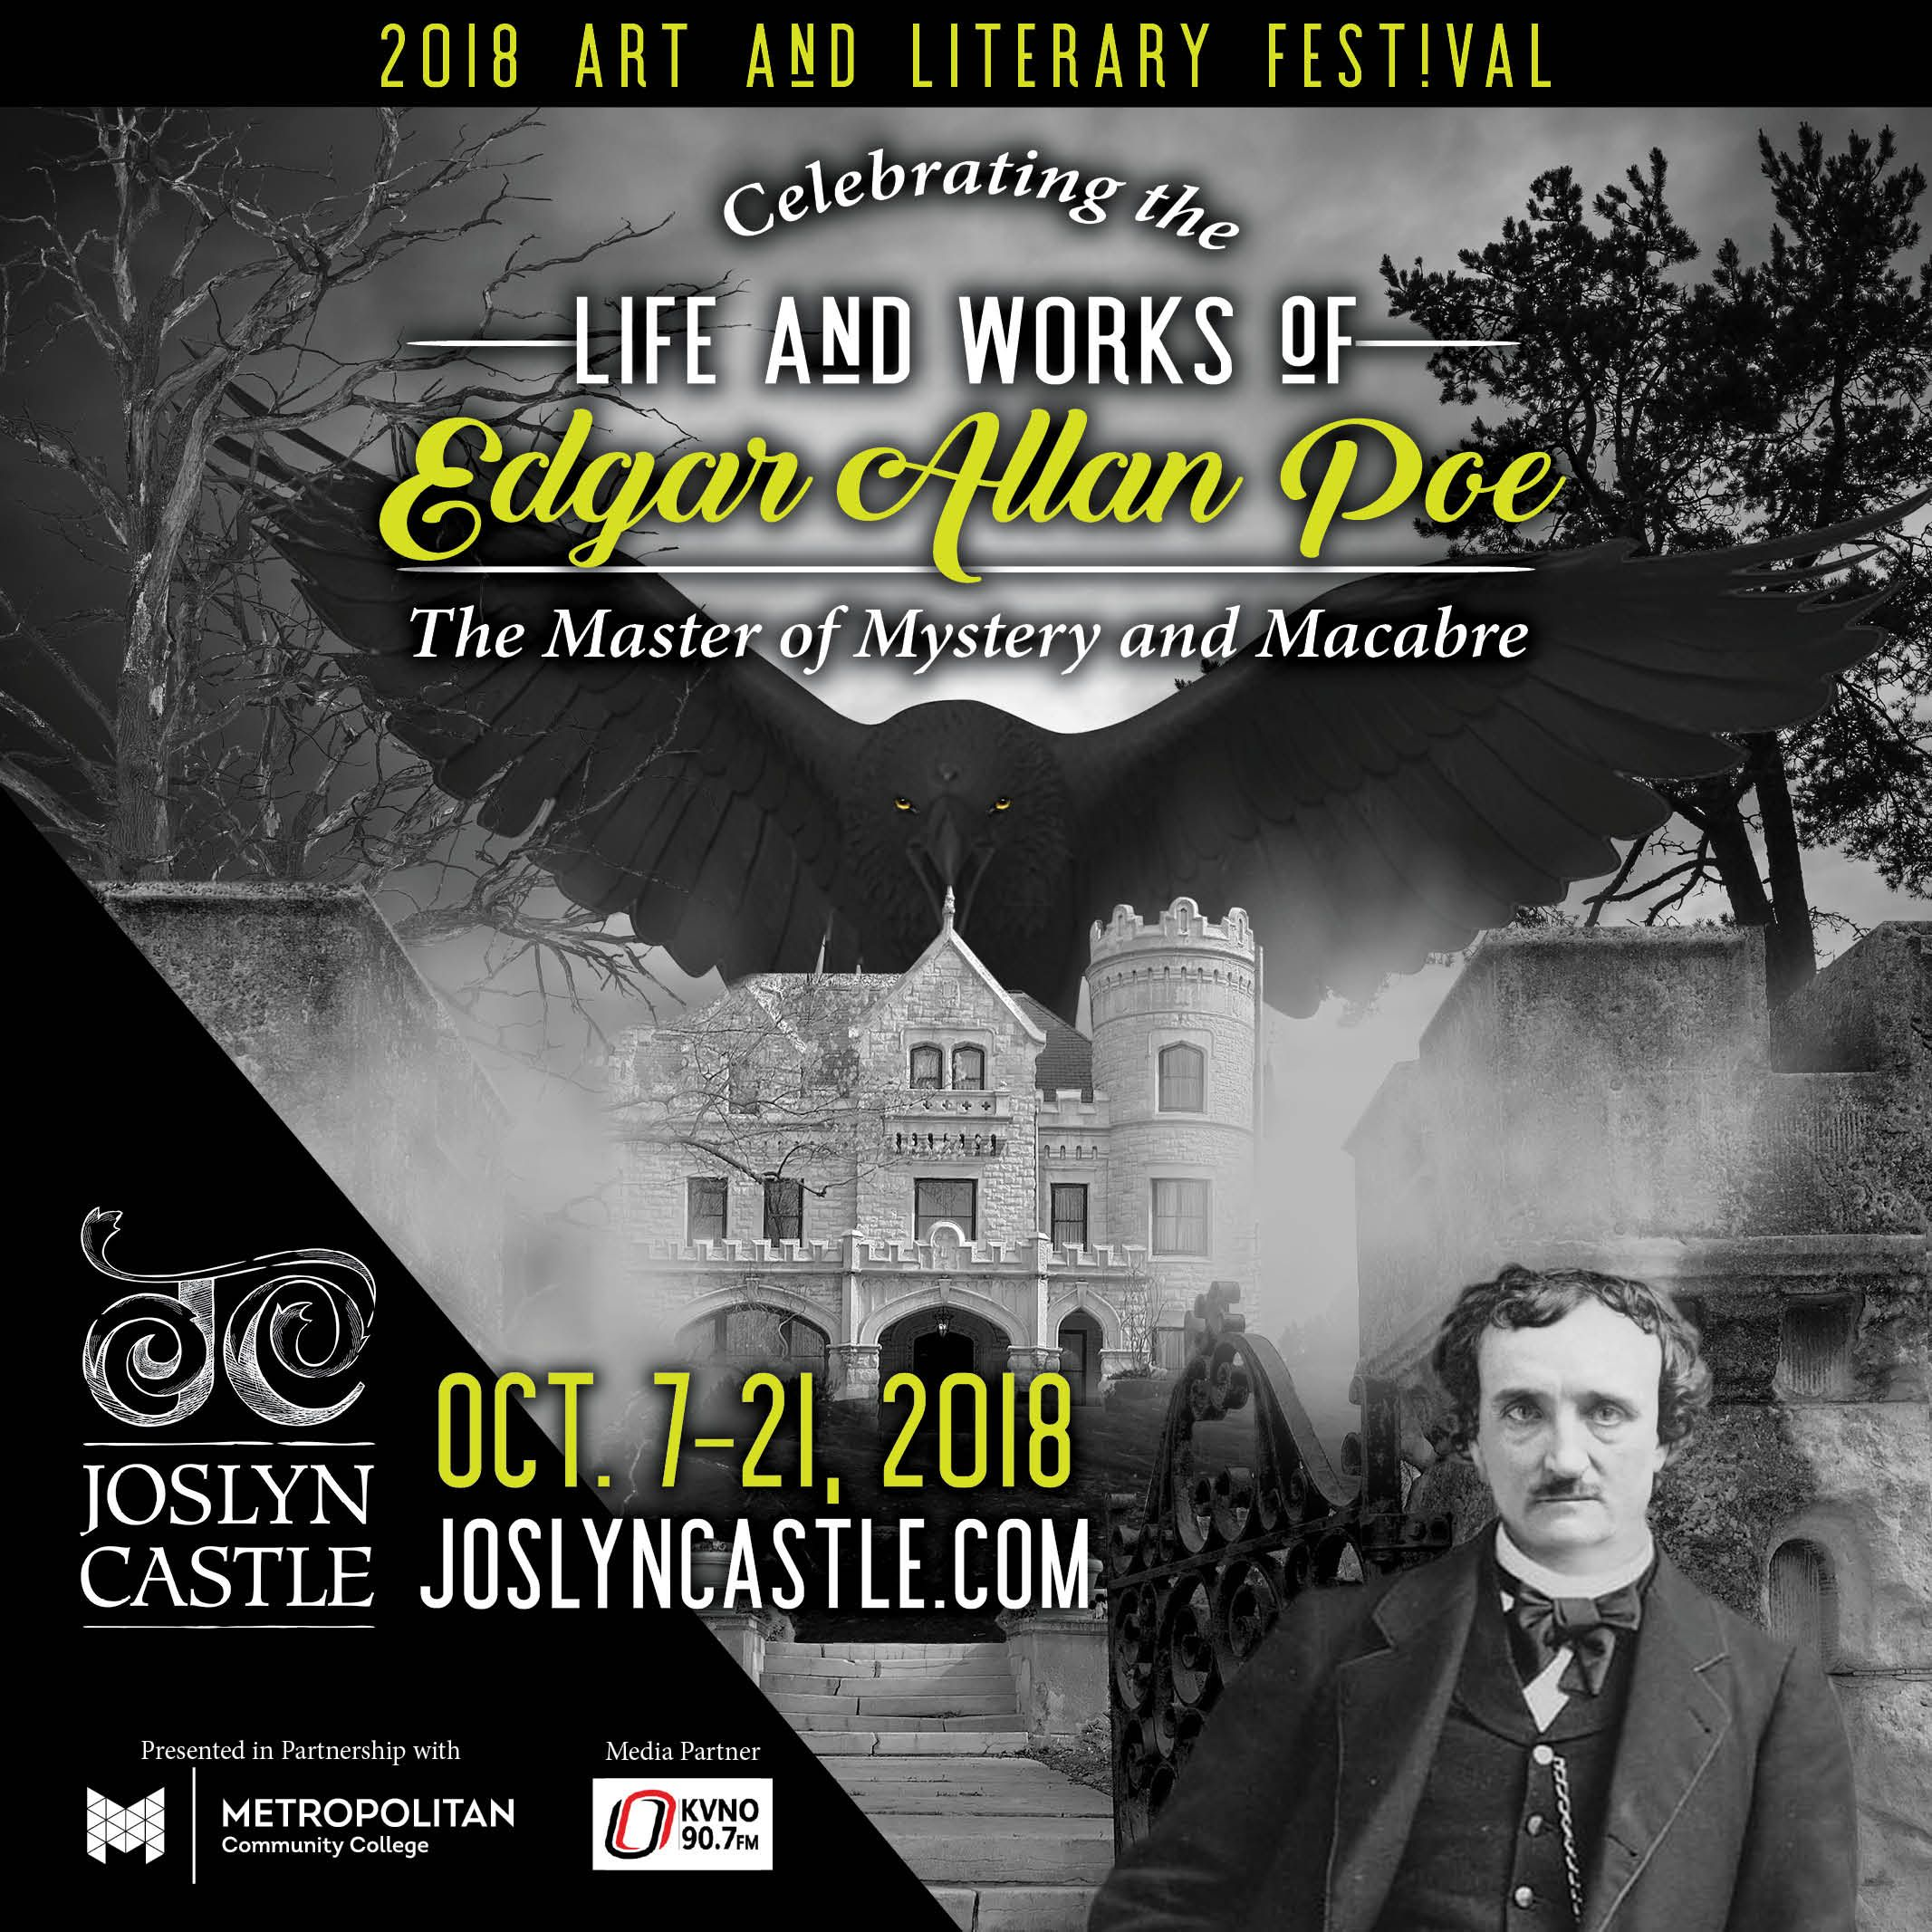 Announcing the 9th Annual Art and Literary Festival